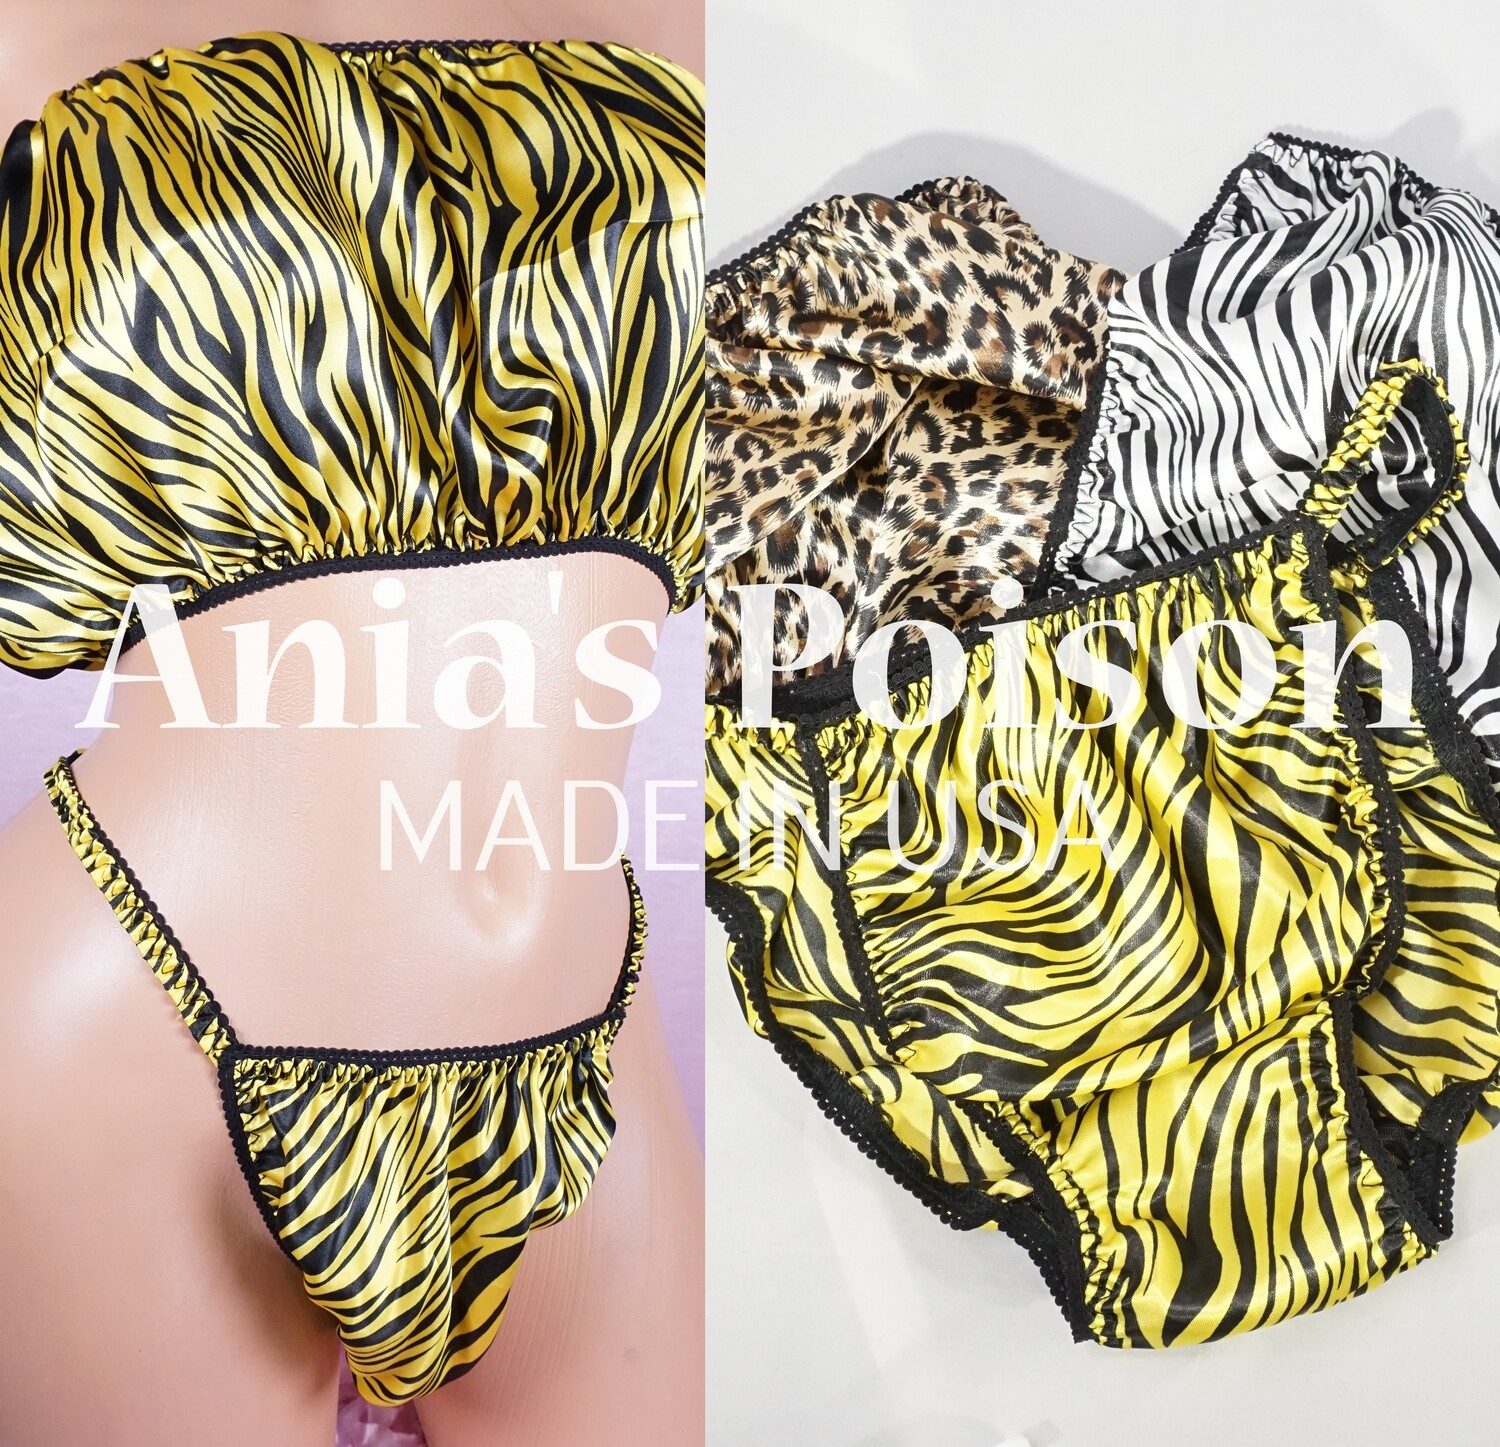 Ania's Poison Animal Prints shiny Rare 100% polyester string bikini sissy mens underwear panties